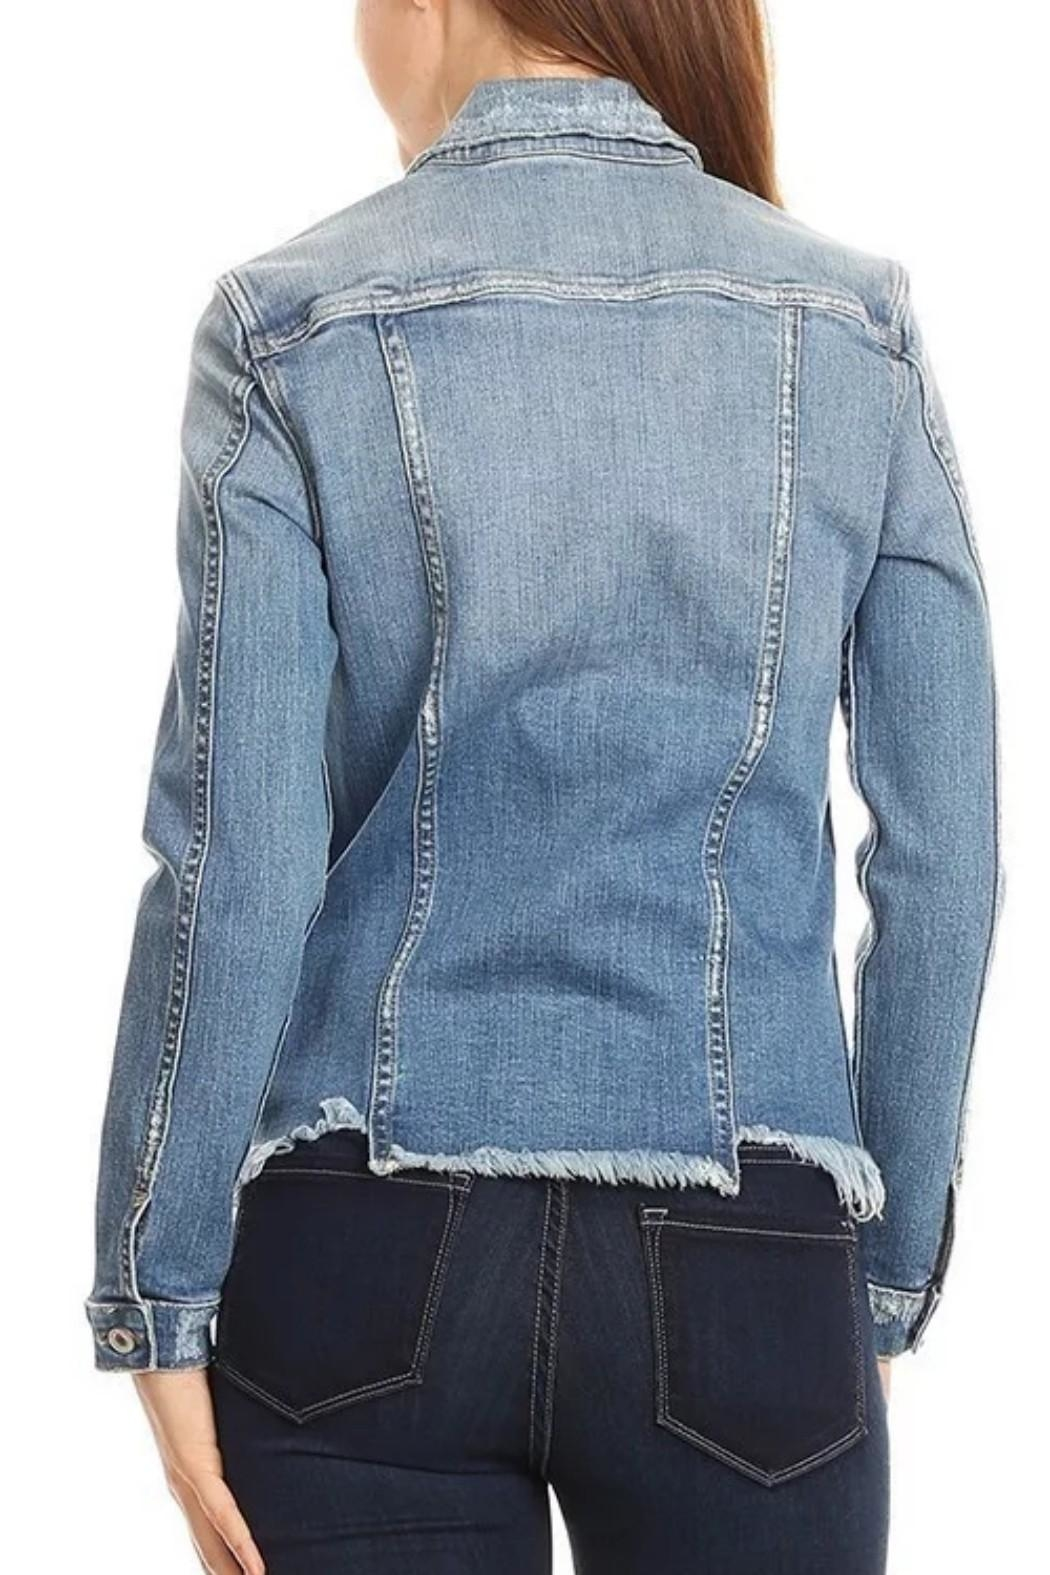 2Sable Frayed Denim Jkt - Front Full Image